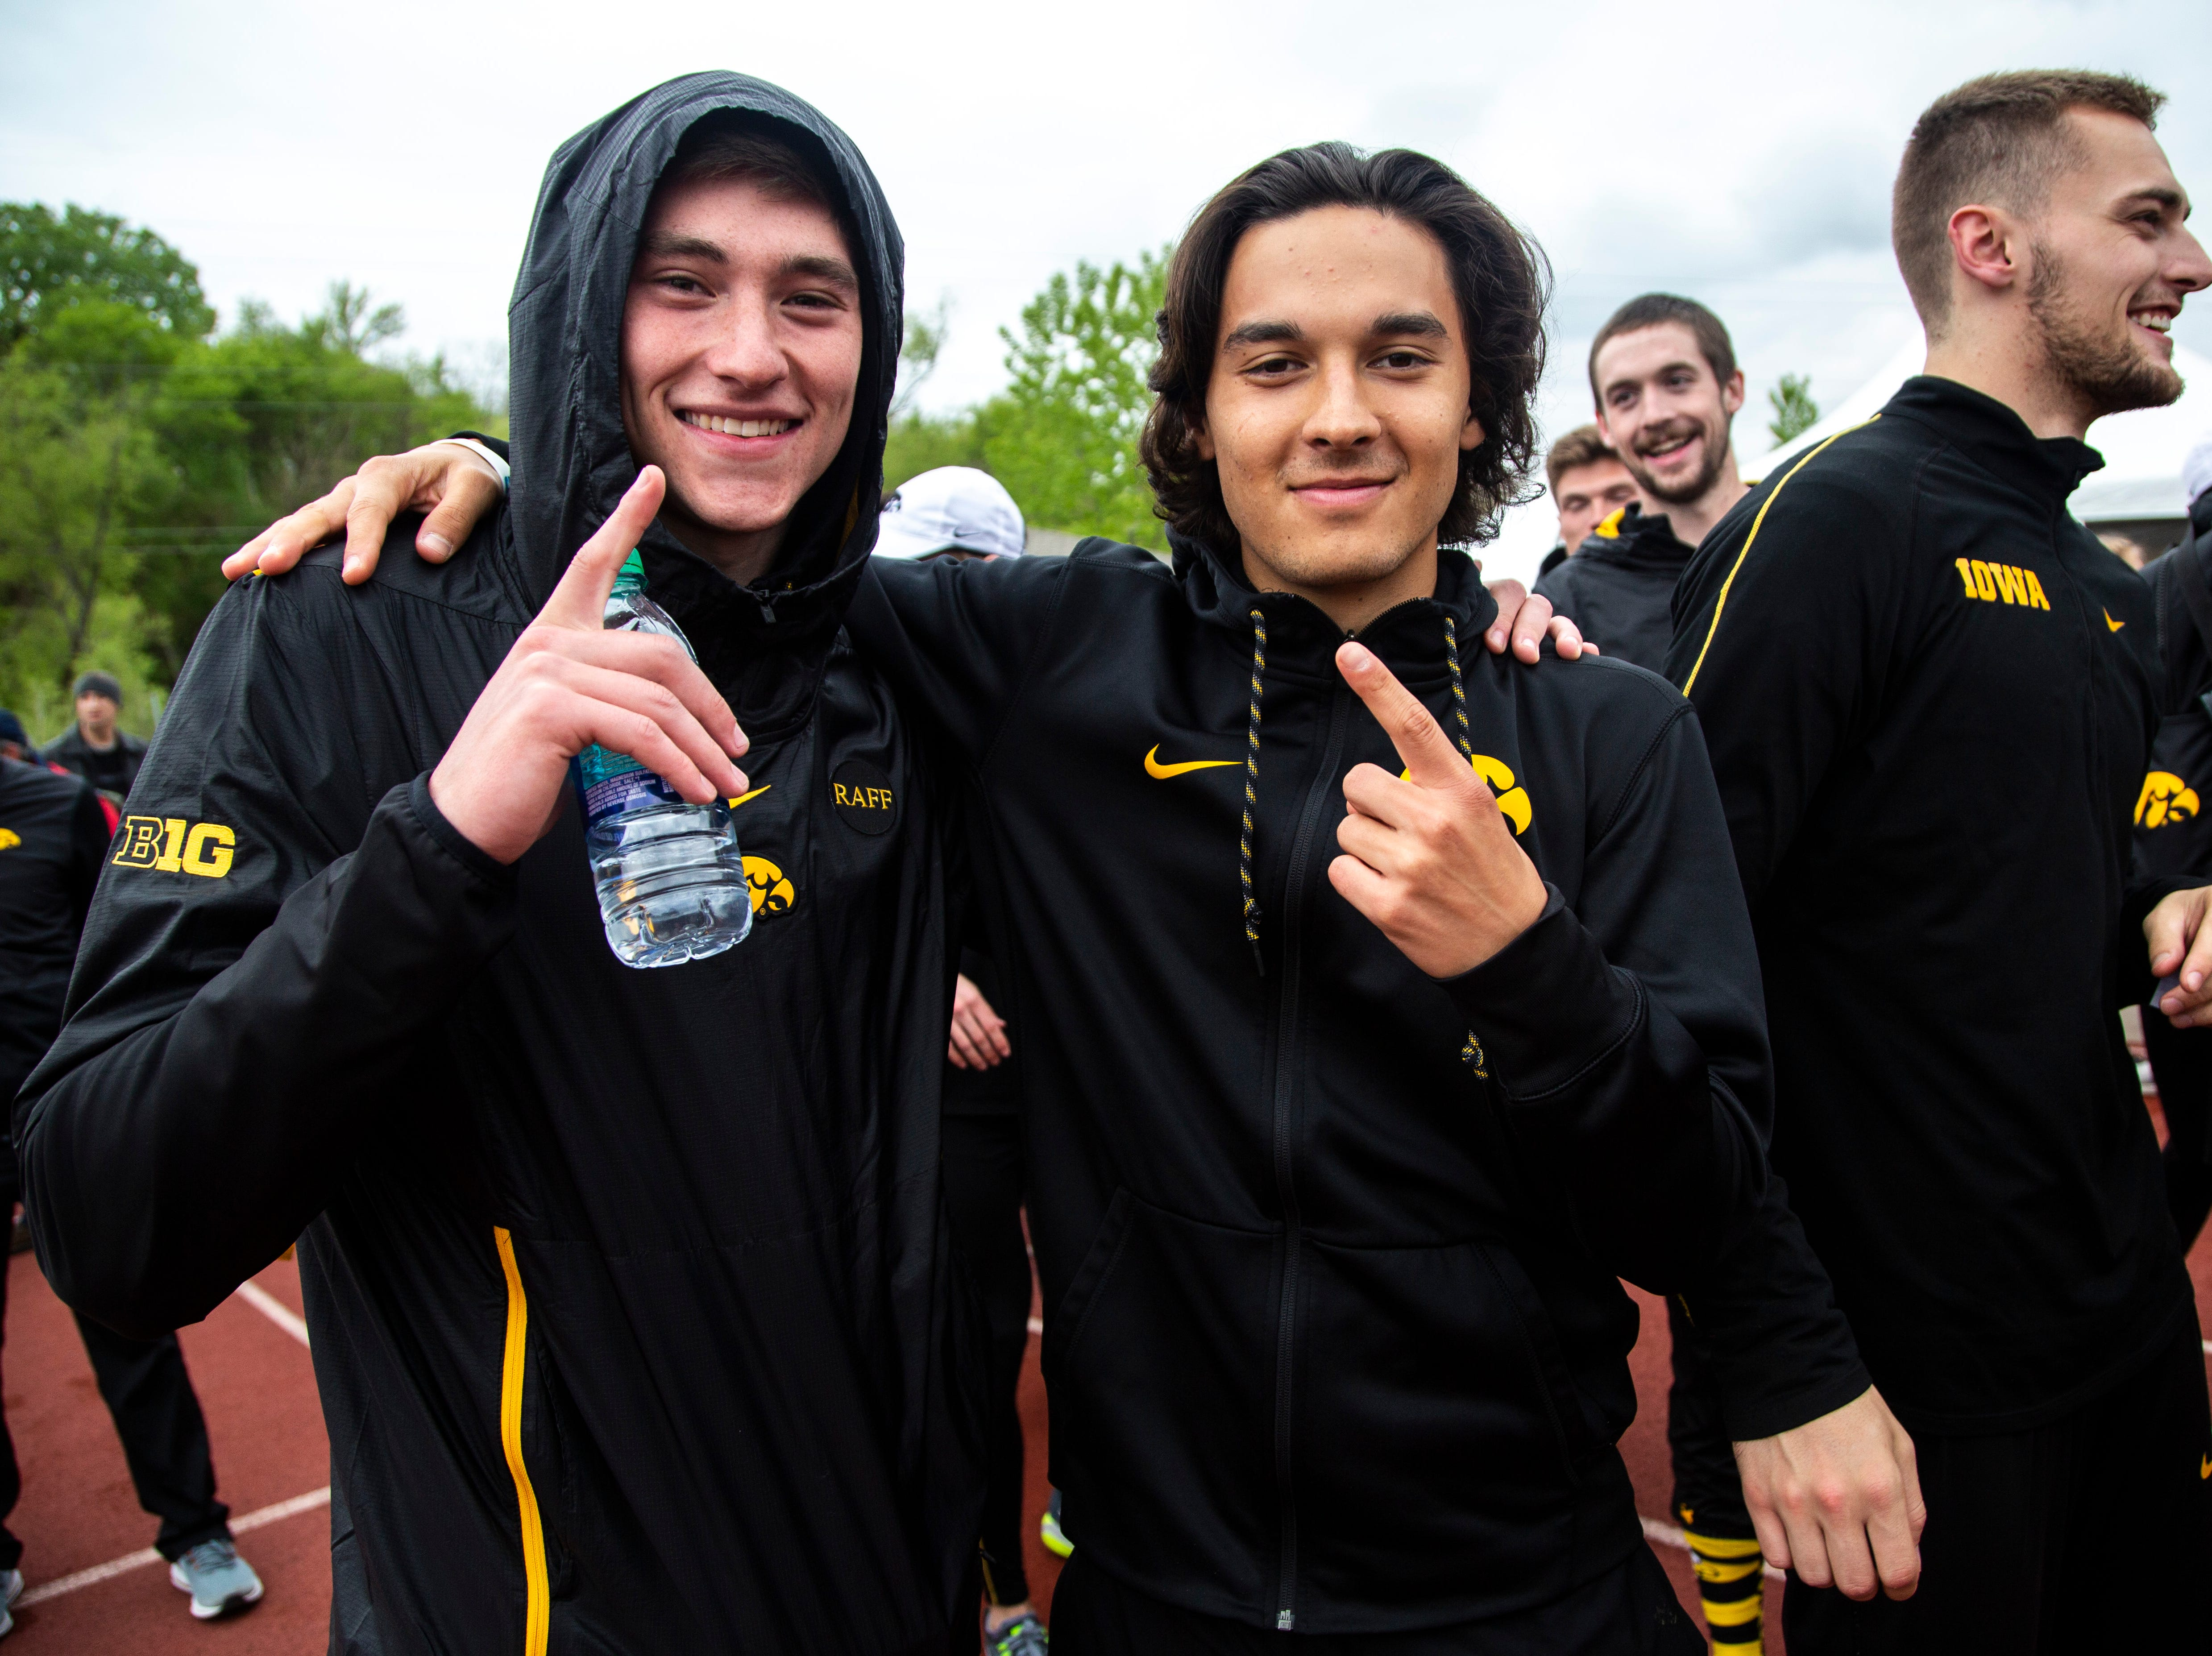 Iowa Hawkeyes men celebrate after the final day of Big Ten track and field outdoor championships, Sunday, May 12, 2019, at Francis X. Cretzmeyer Track on the University of Iowa campus in Iowa City, Iowa.